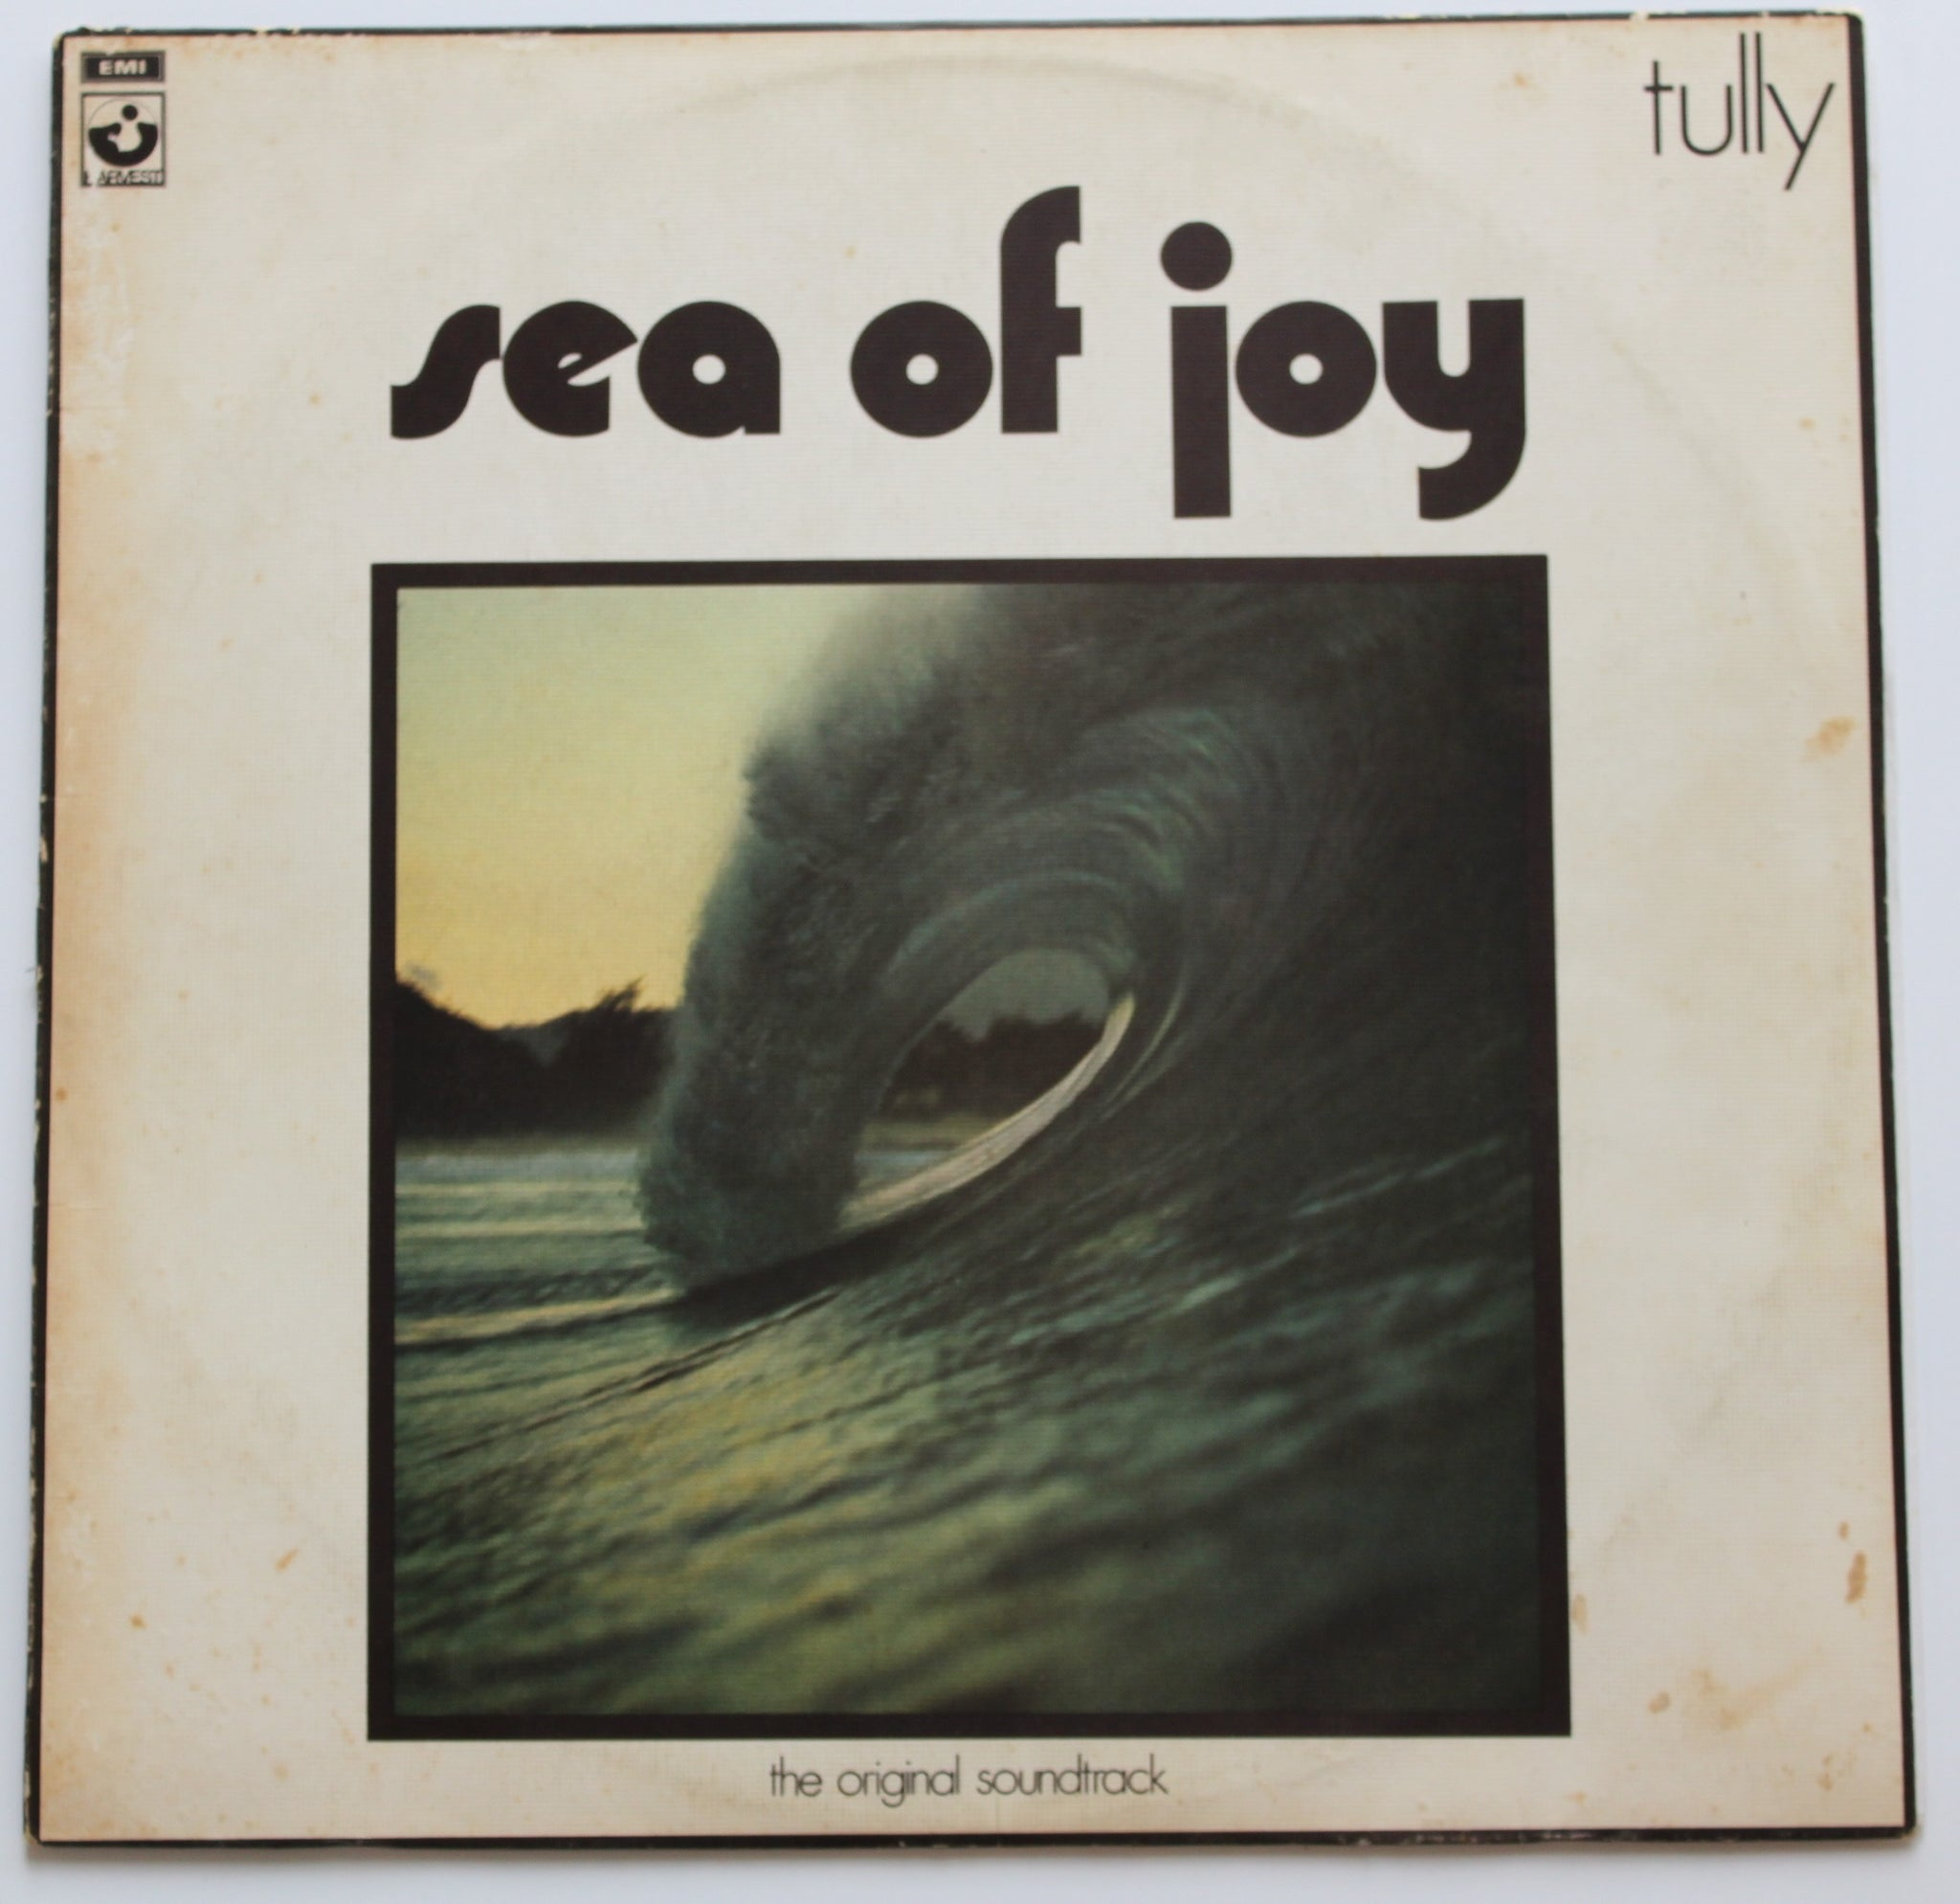 Sea of Joy Soundtrack Album.